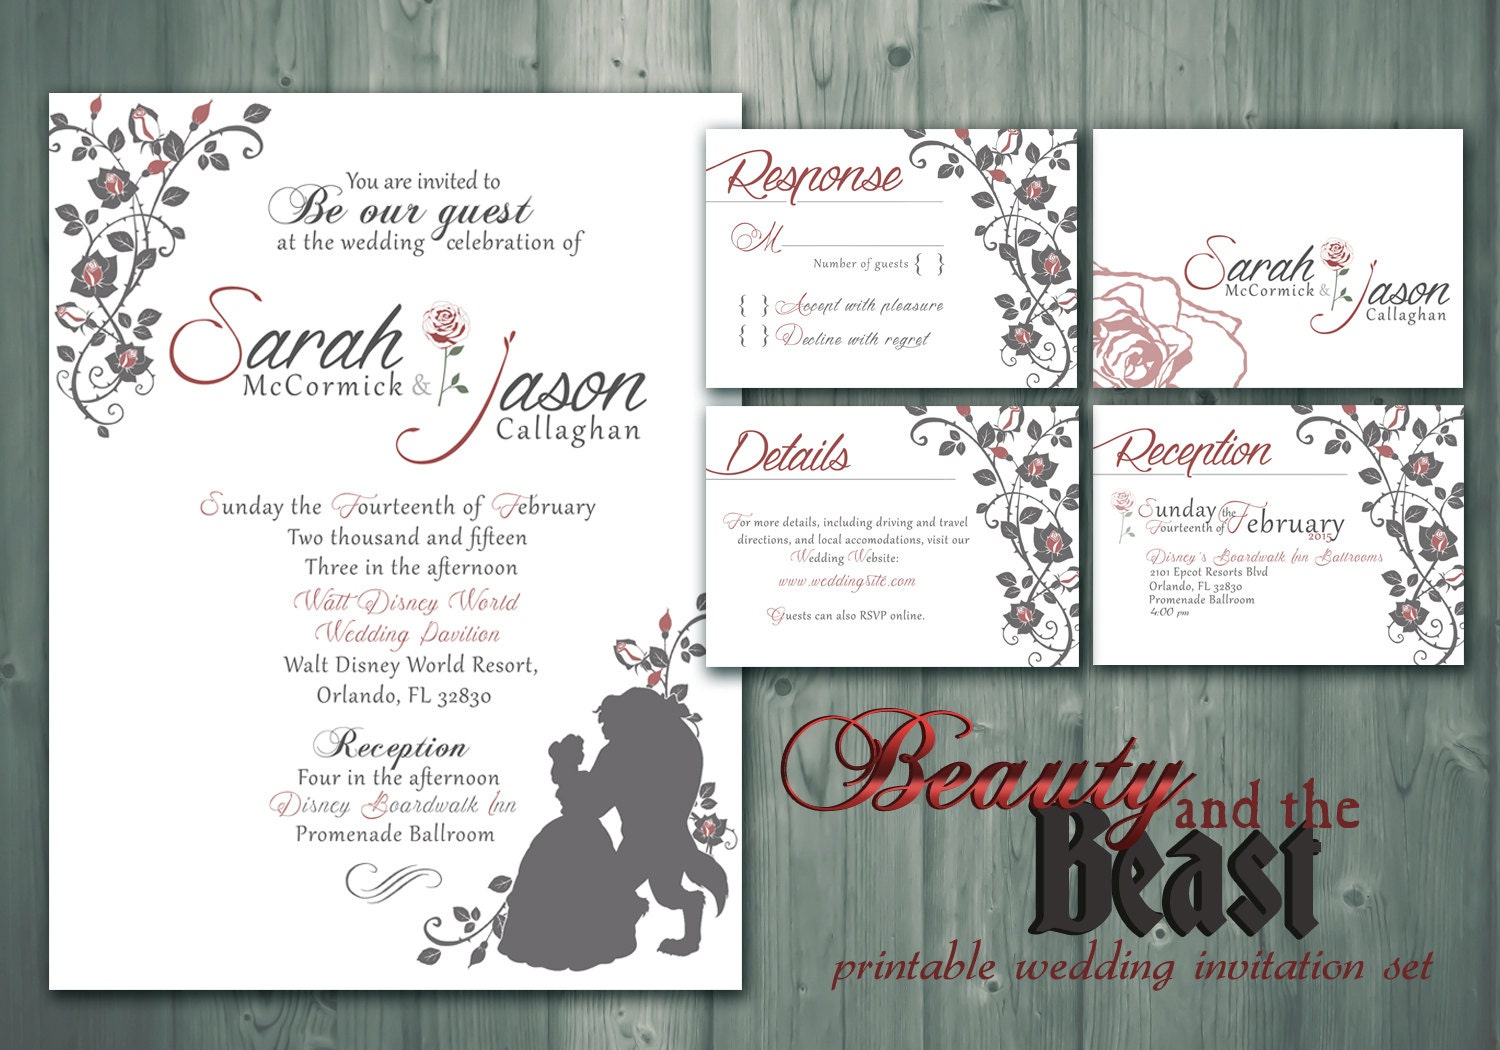 Beauty And The Beast Themed Wedding Invitations: Beauty And The Beast Printable Wedding Invitation / RSVP